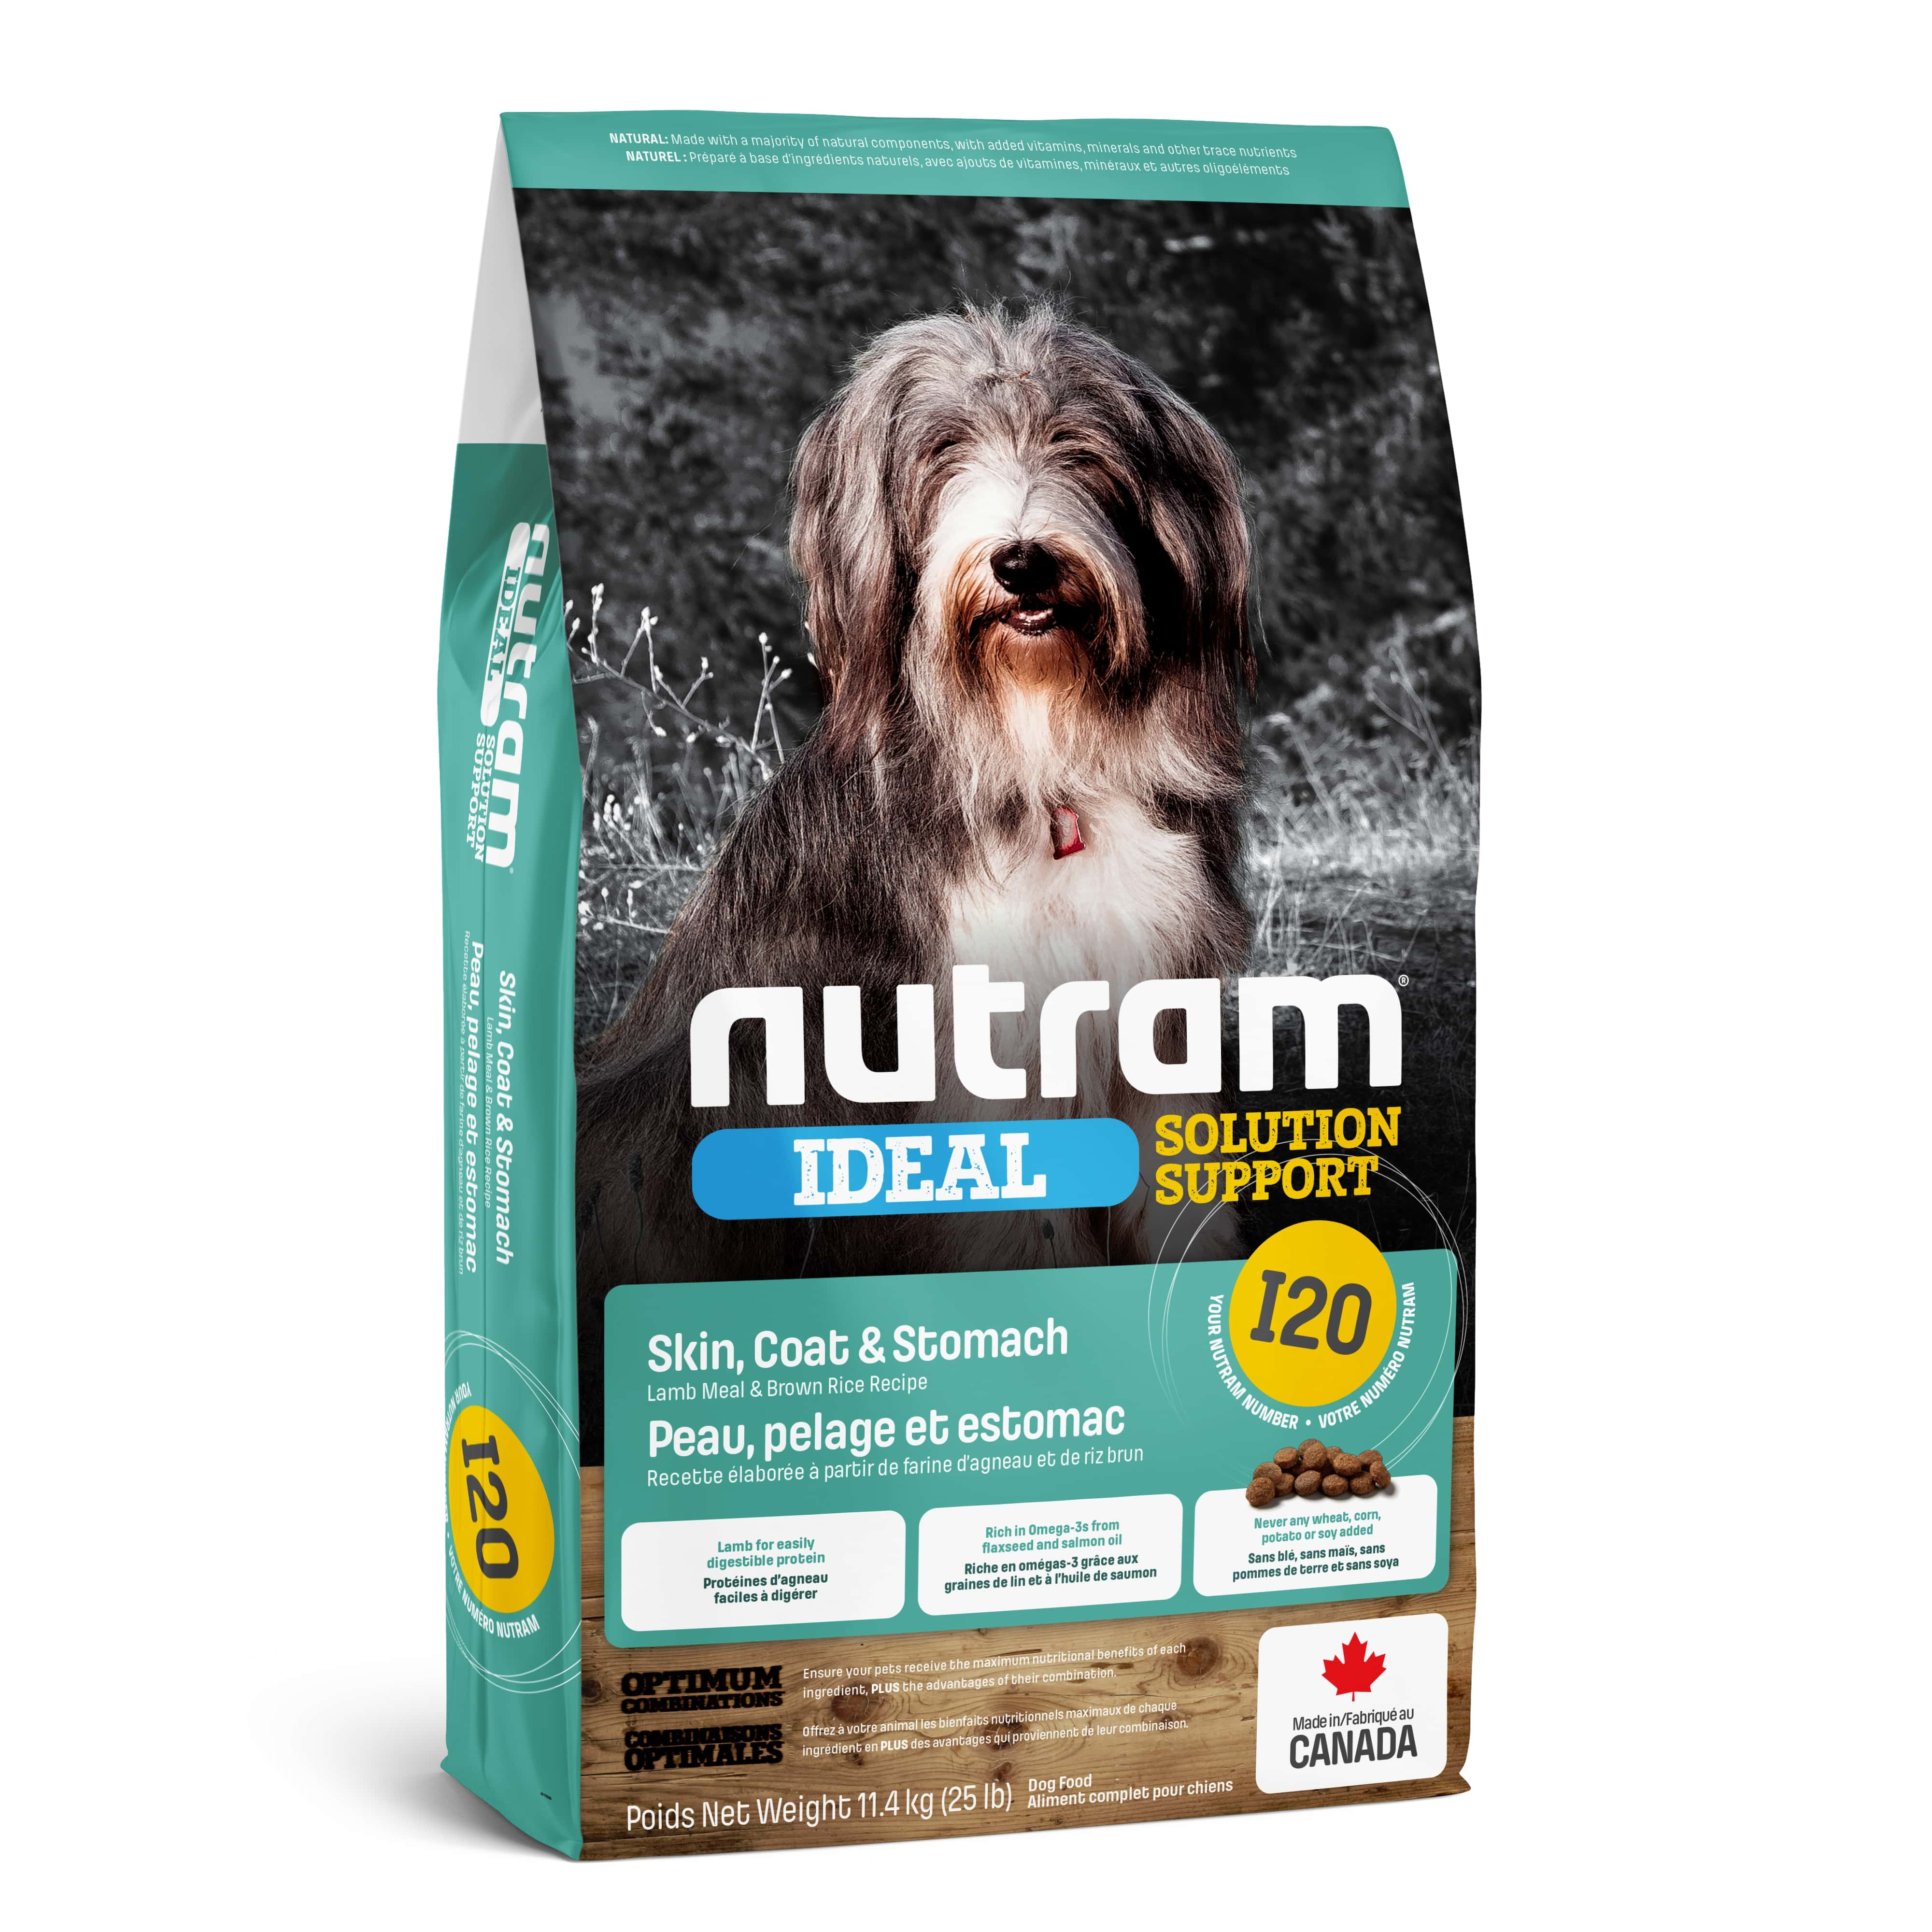 I20 Nutram Ideal Solution Support® Sensetive Dog Natural Food